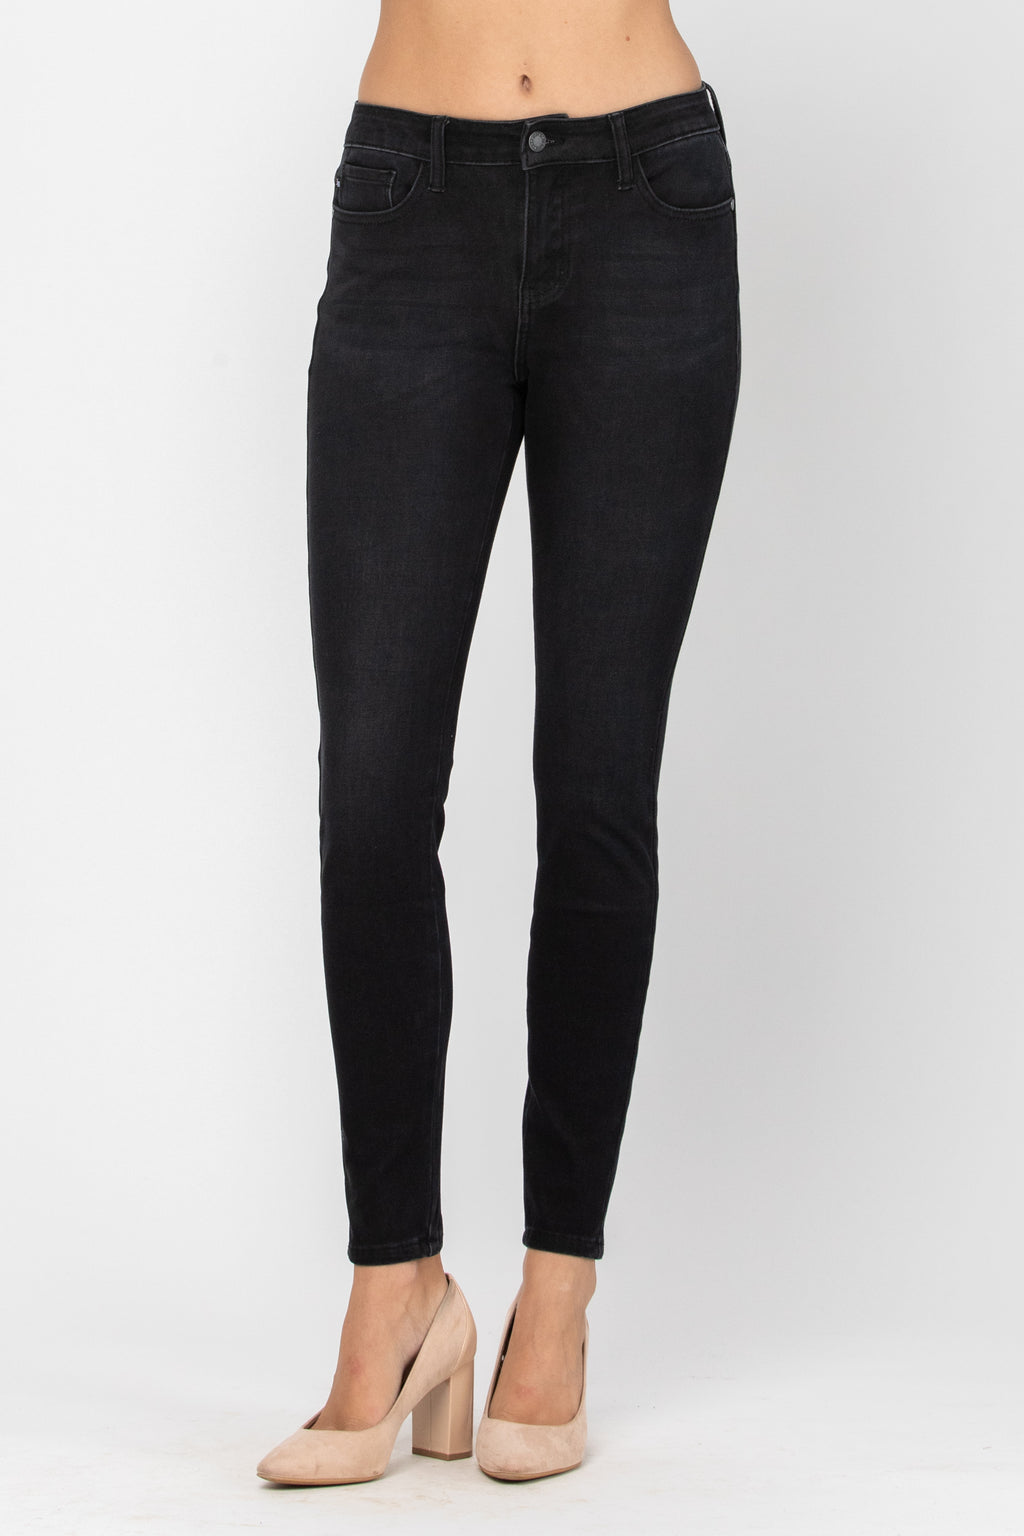 Dianna Black Thermal Skinny